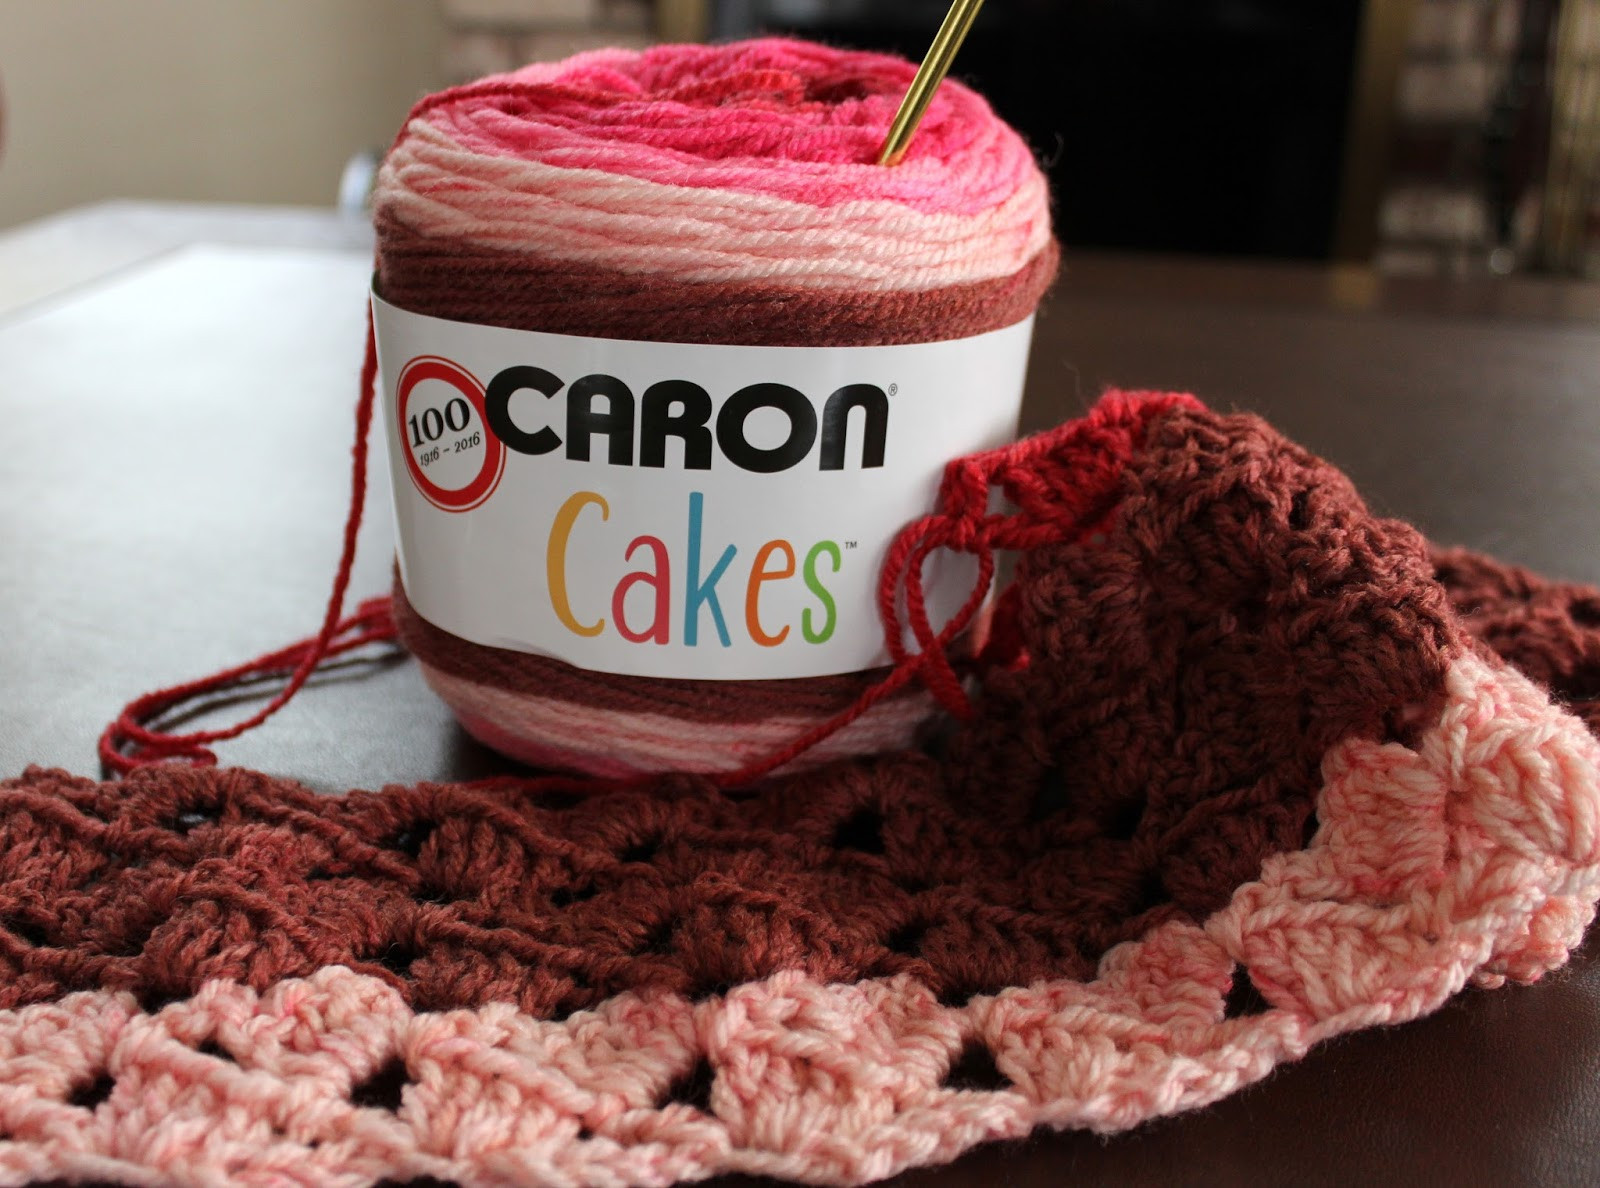 Awesome Lacy Crochet My First Caron Cakes In Cherry Chip Yarn Review Baby Cakes Yarn Of Lovely 45 Images Baby Cakes Yarn